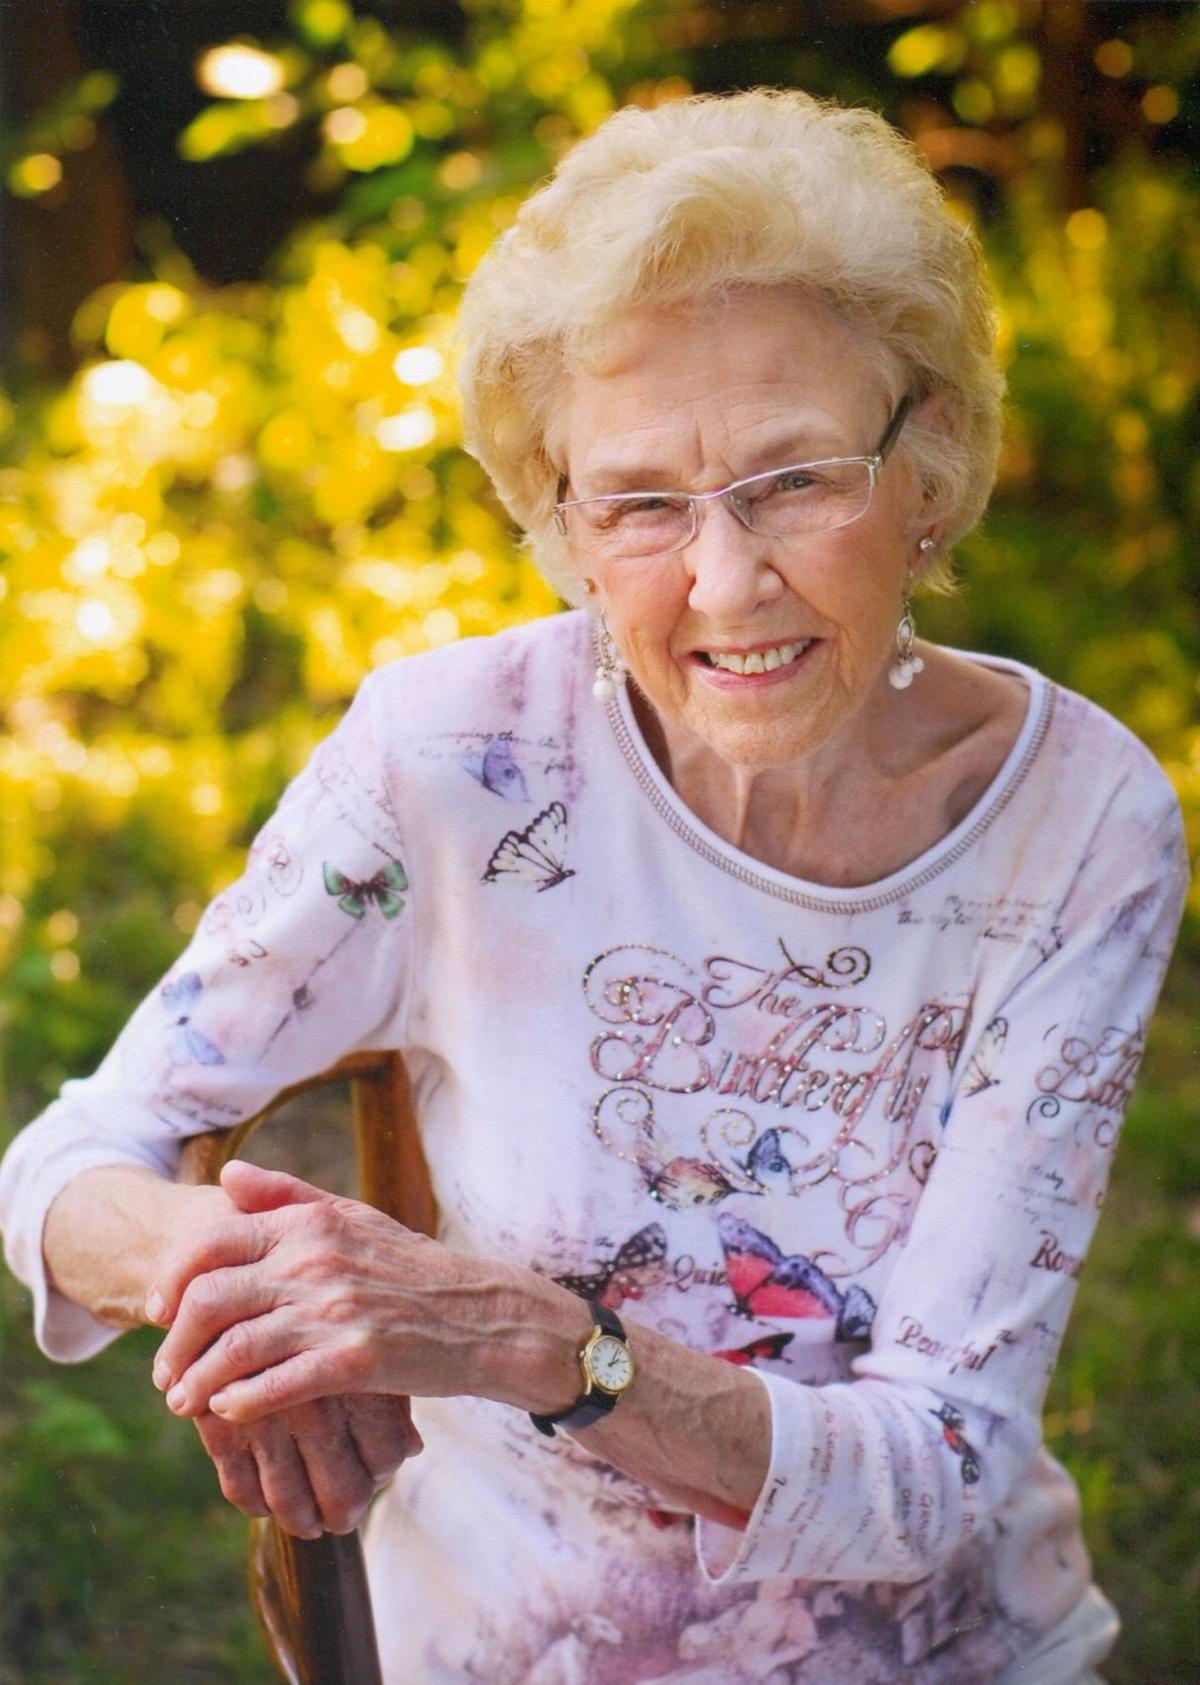 late businessw loescher known for her strong work ethic late businessw loescher known for her strong work ethic leadership